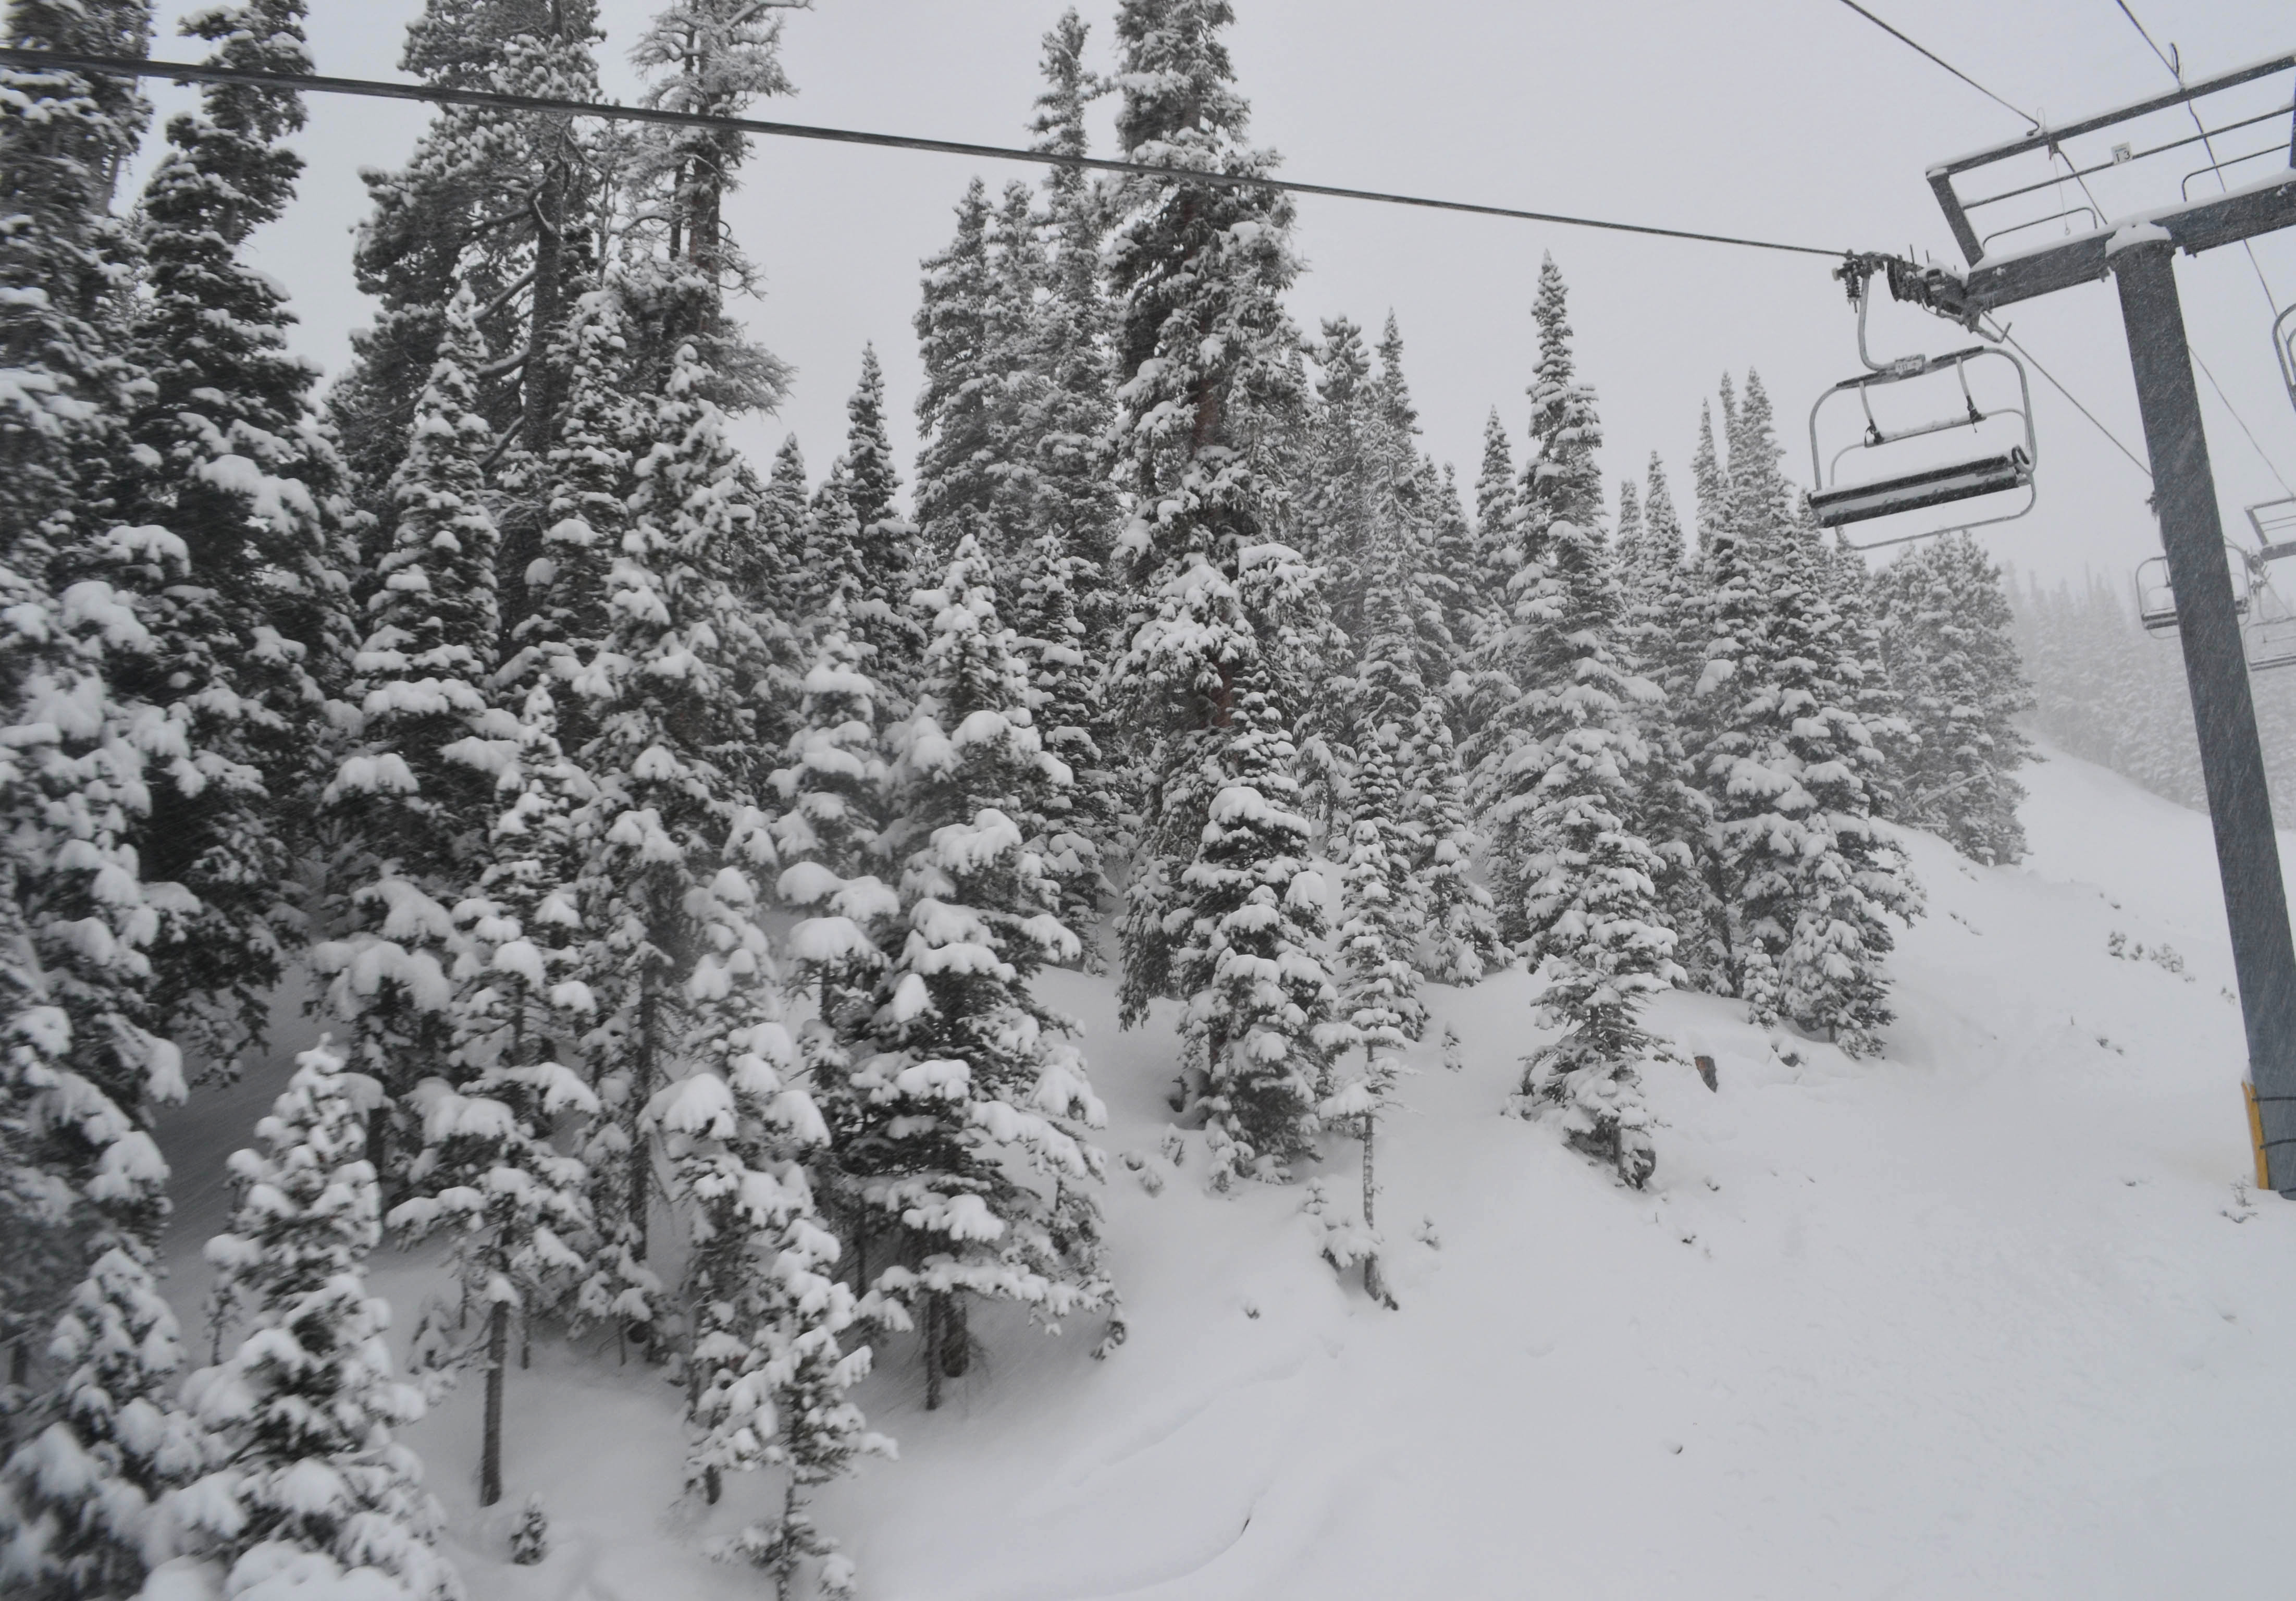 Snowy world at Breck